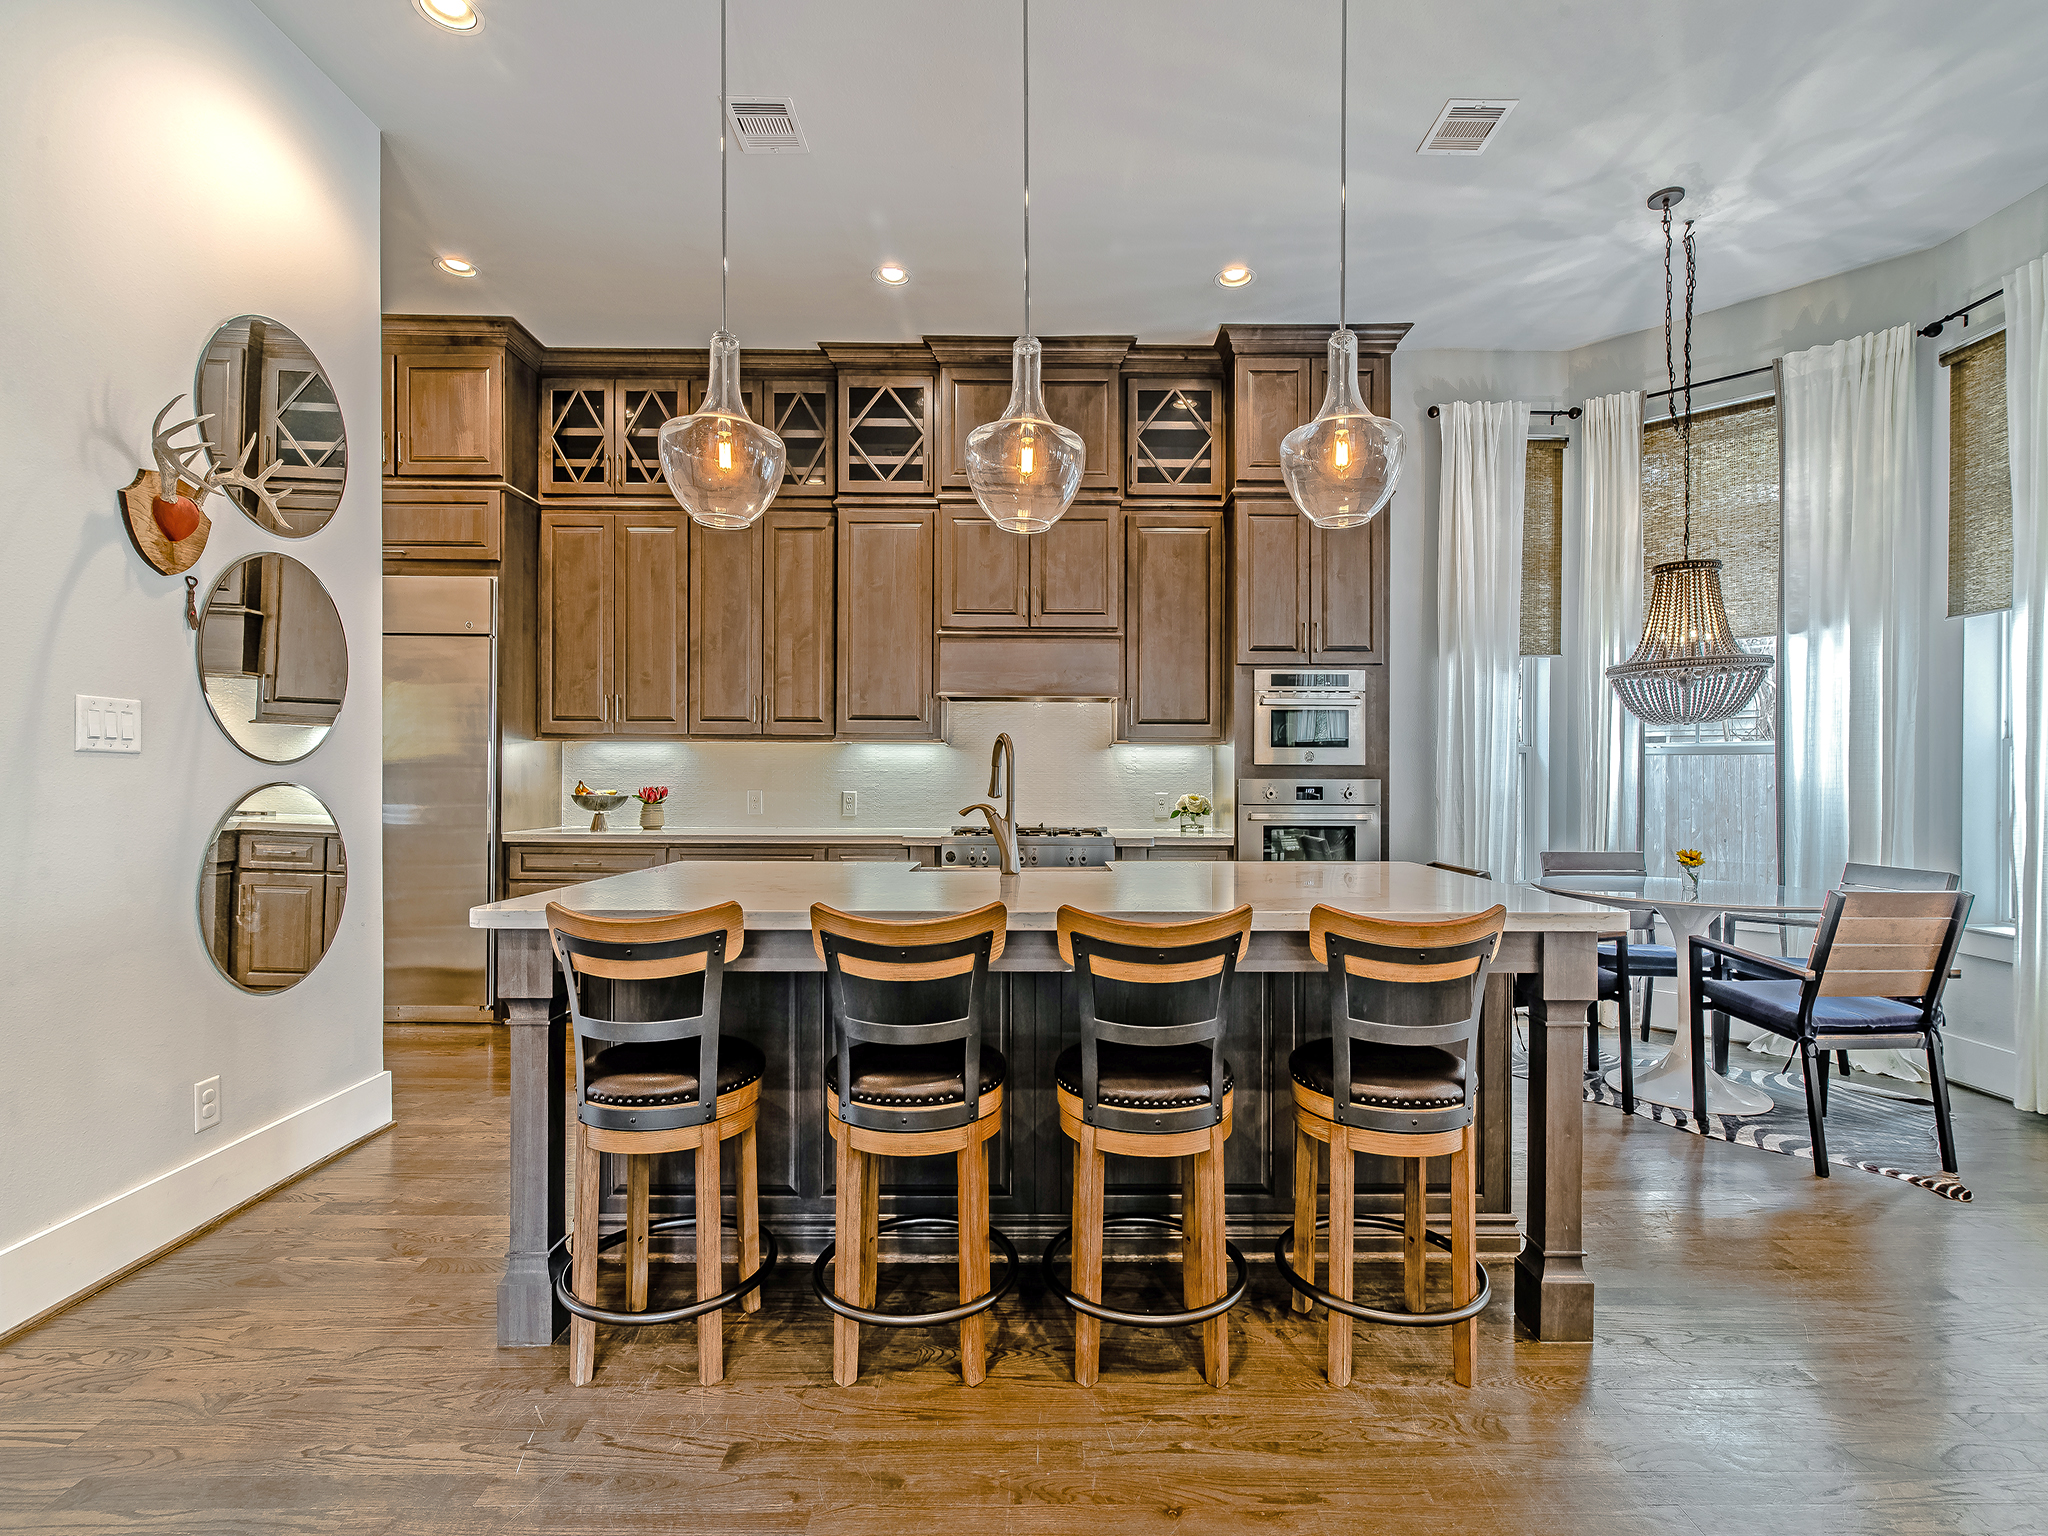 Ample island seating, breakfast nook, designer lighting make this kitchen a dream for entertaining.